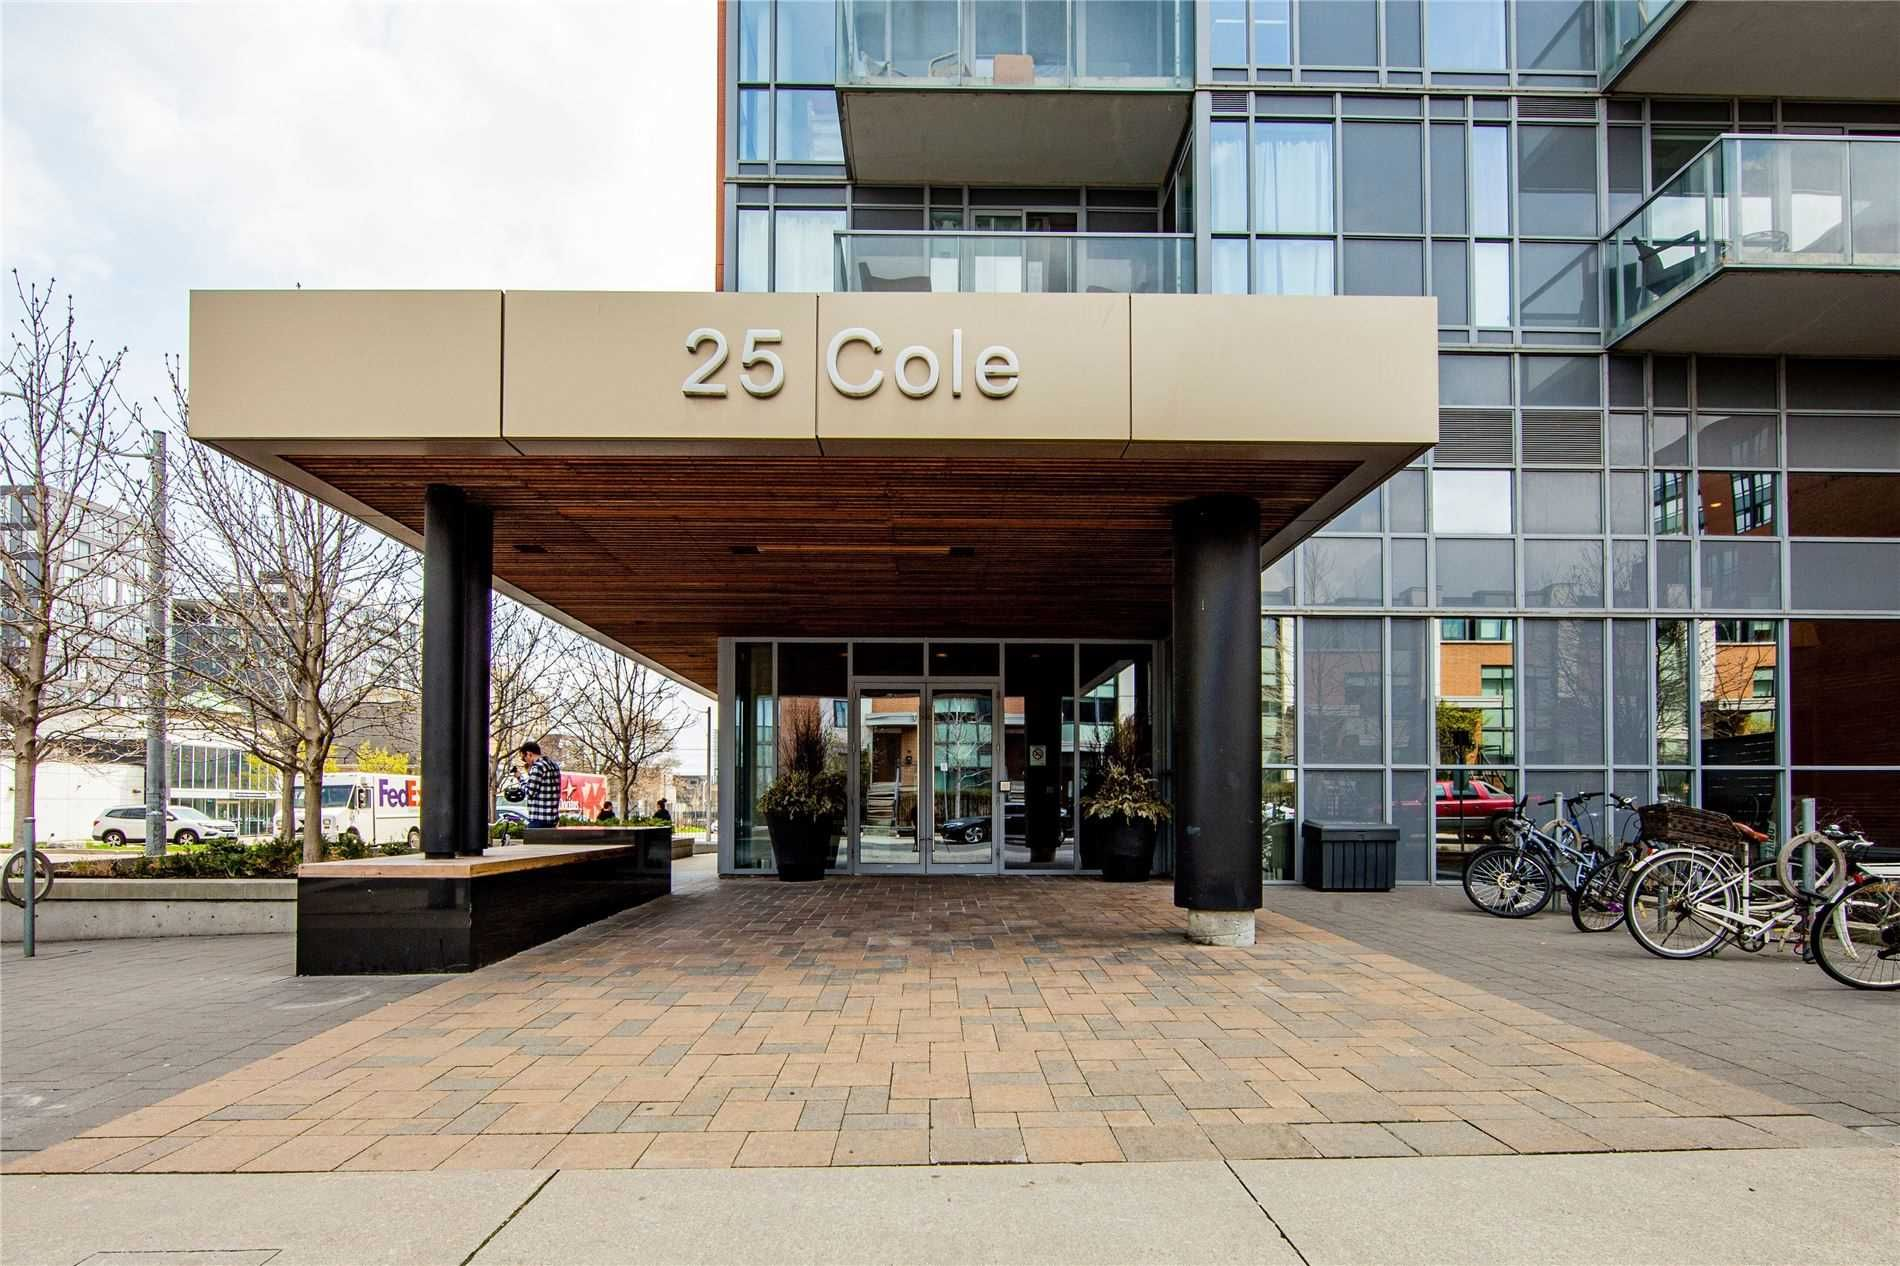 25 Cole St, unit 1504 for sale in Toronto - image #2